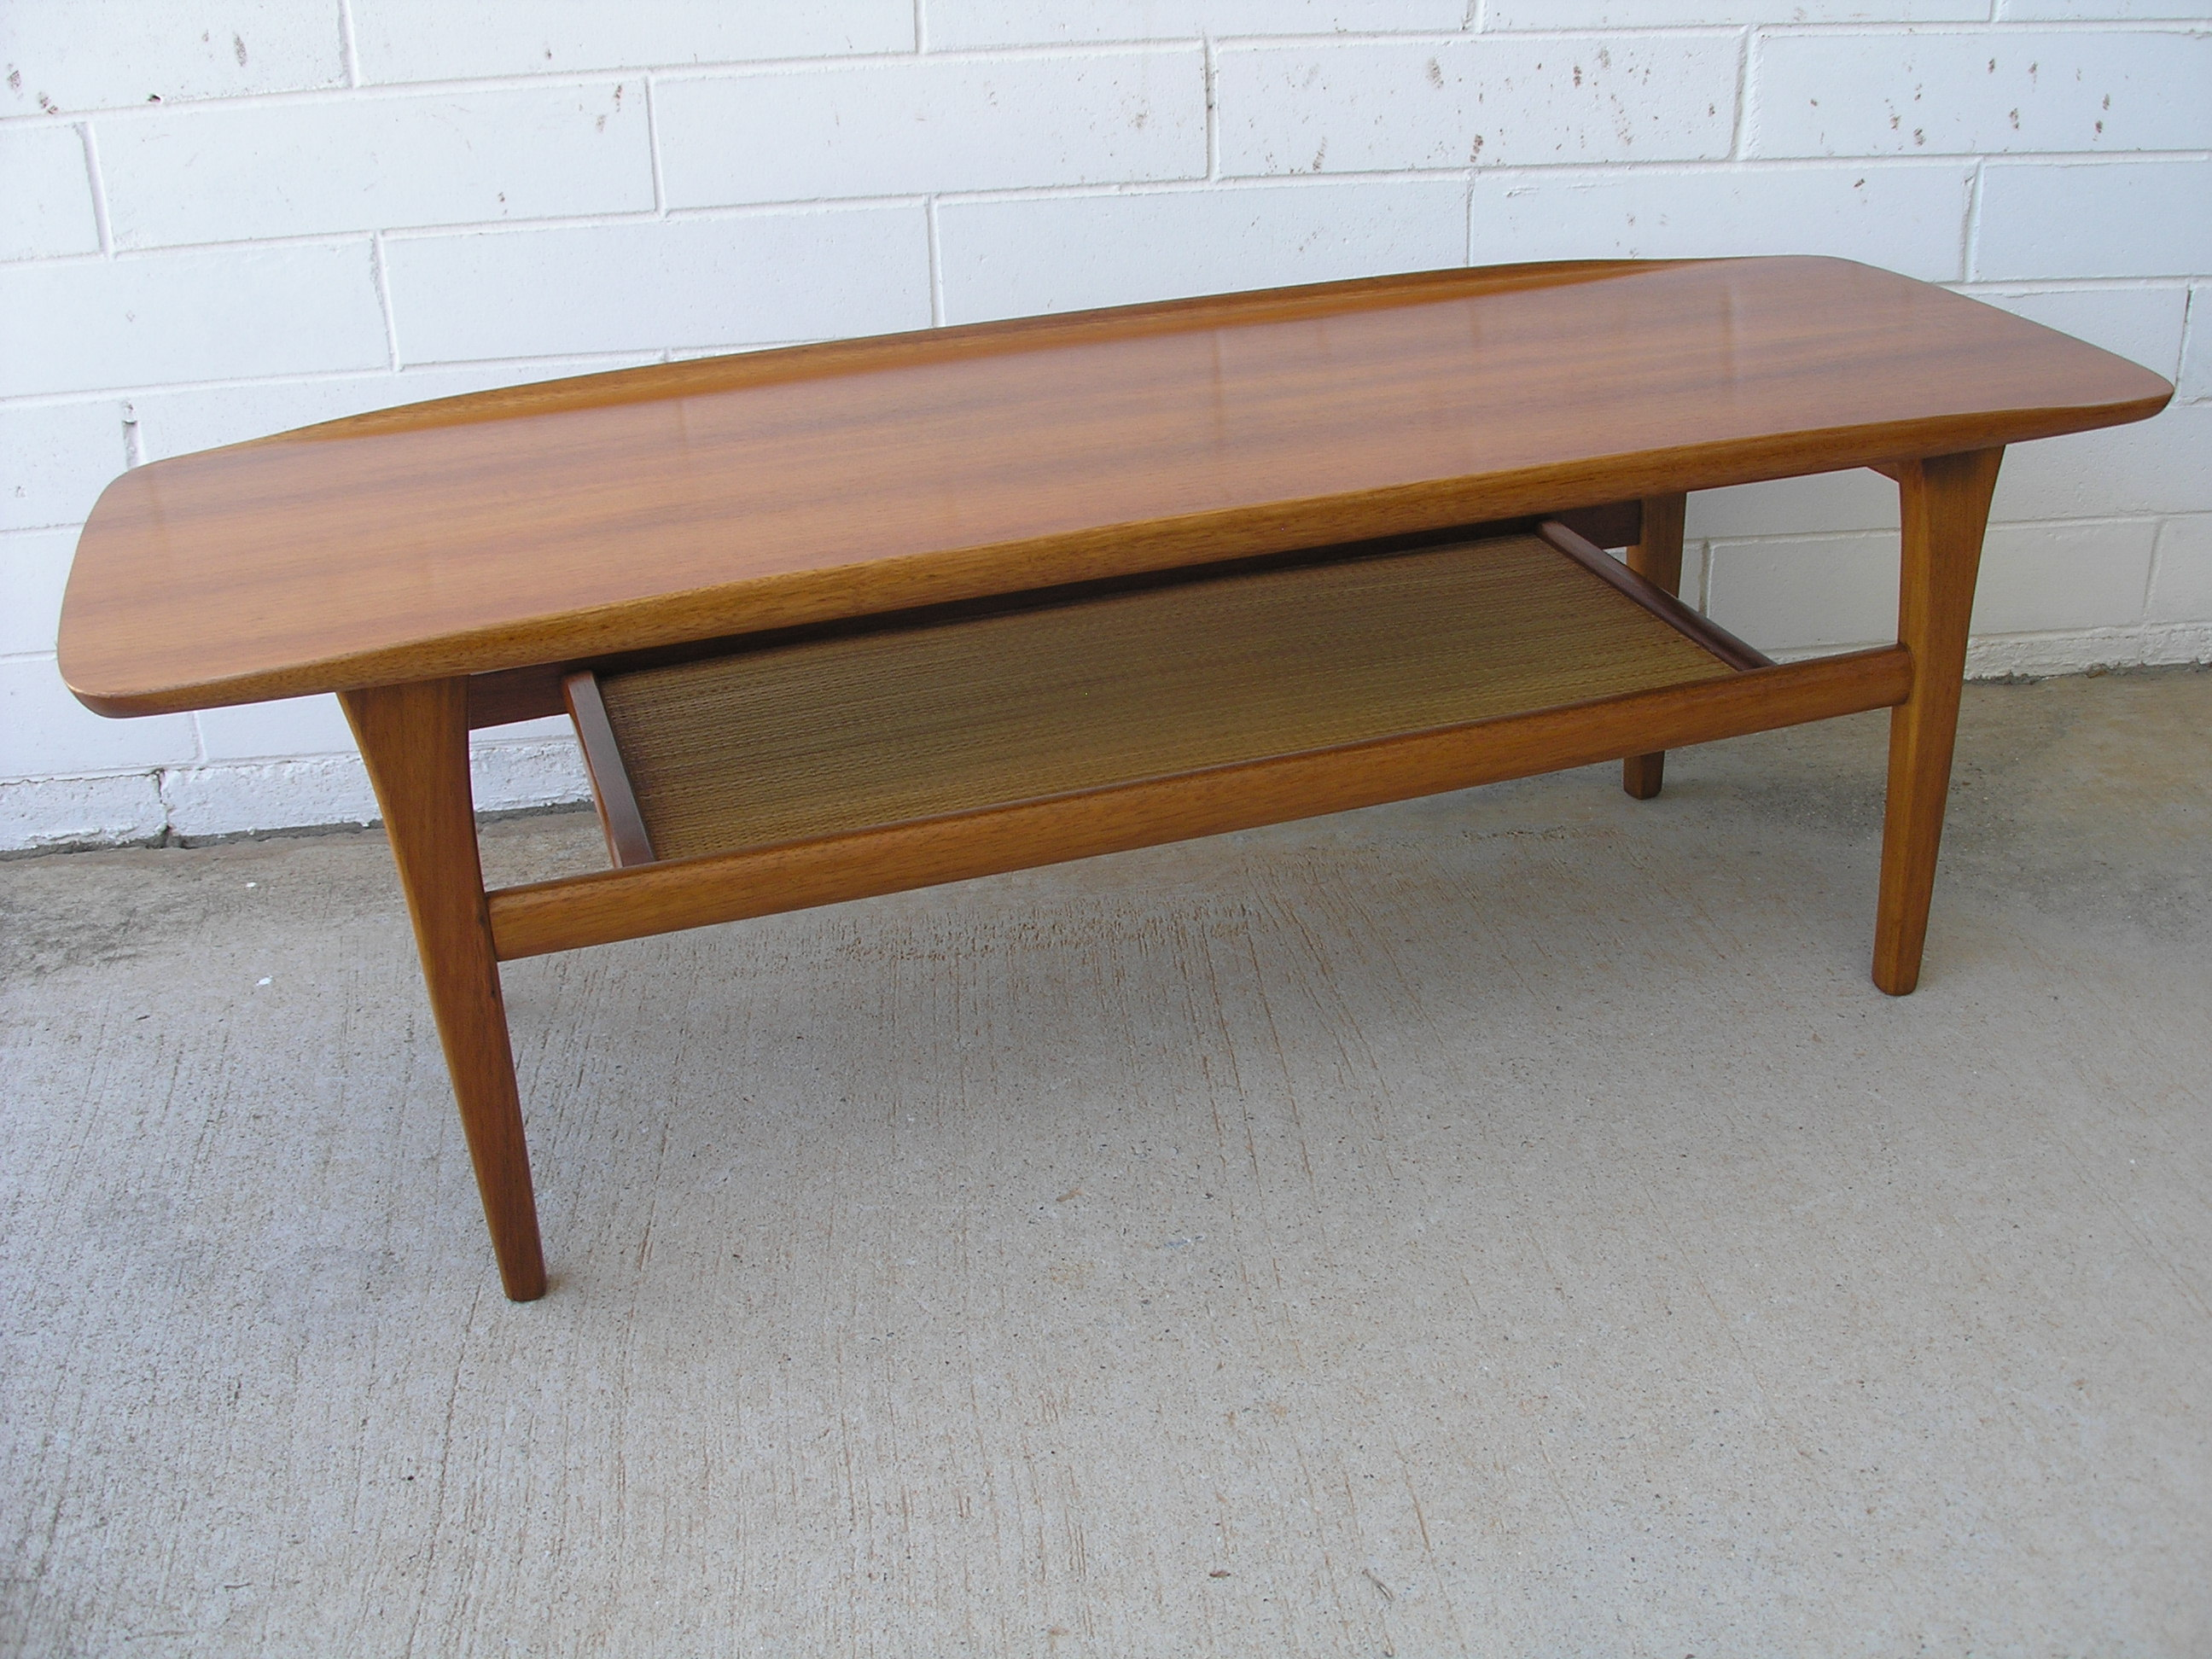 Retro coffee table full size of coffee retro coffee table for Coffee tables ebay australia